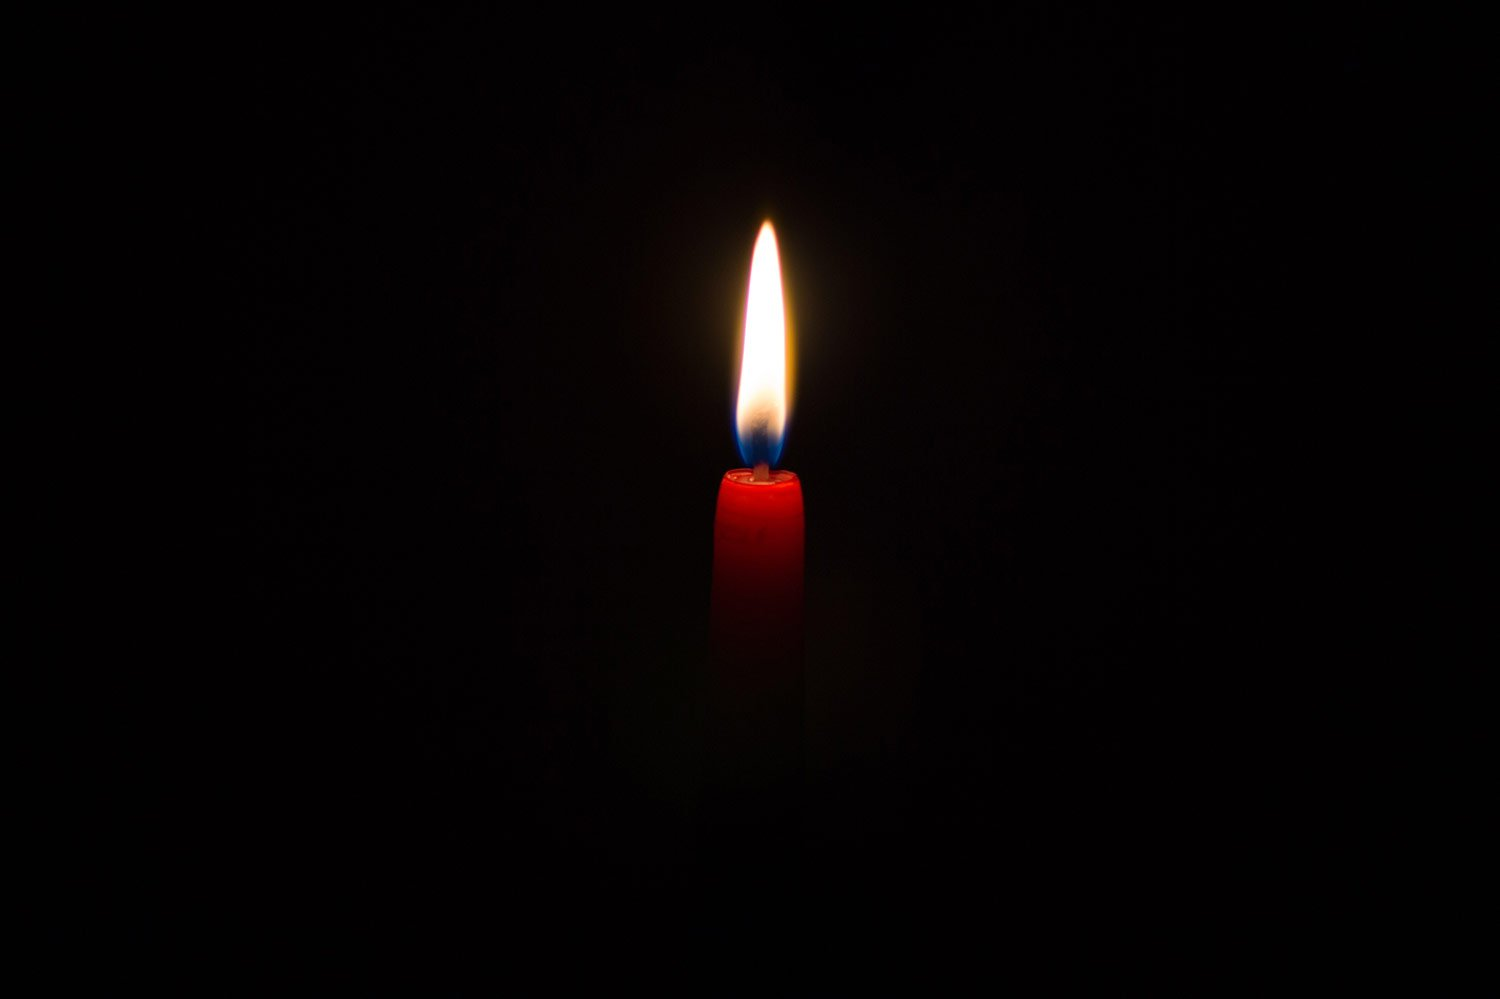 Bereavement & grief signified by a burning candle